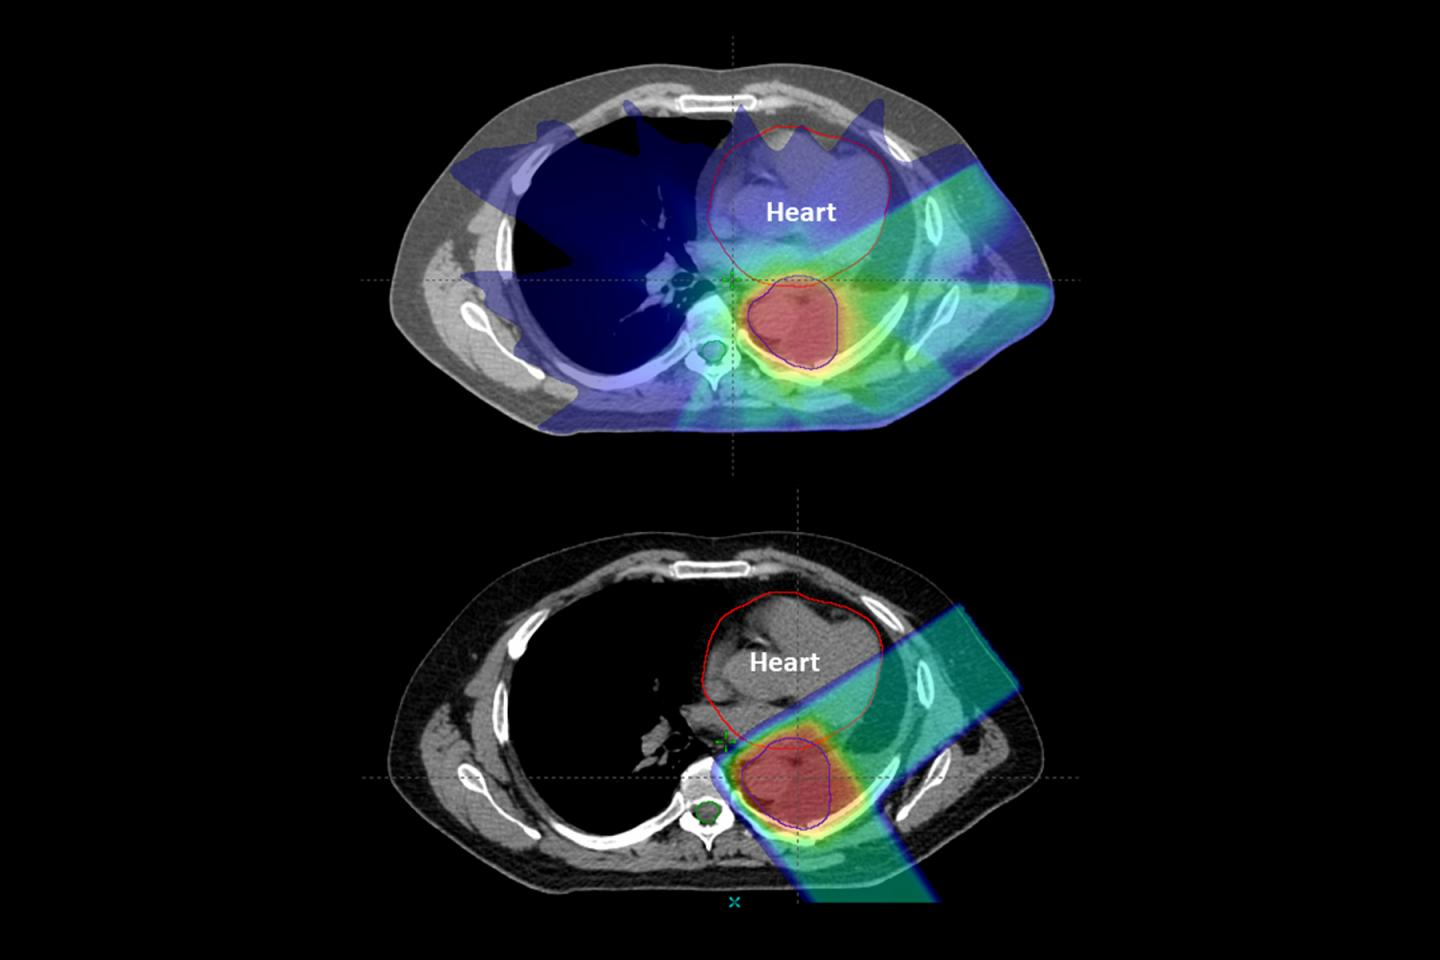 Proton Therapy for Cancer Lowers Risk of Side Effects